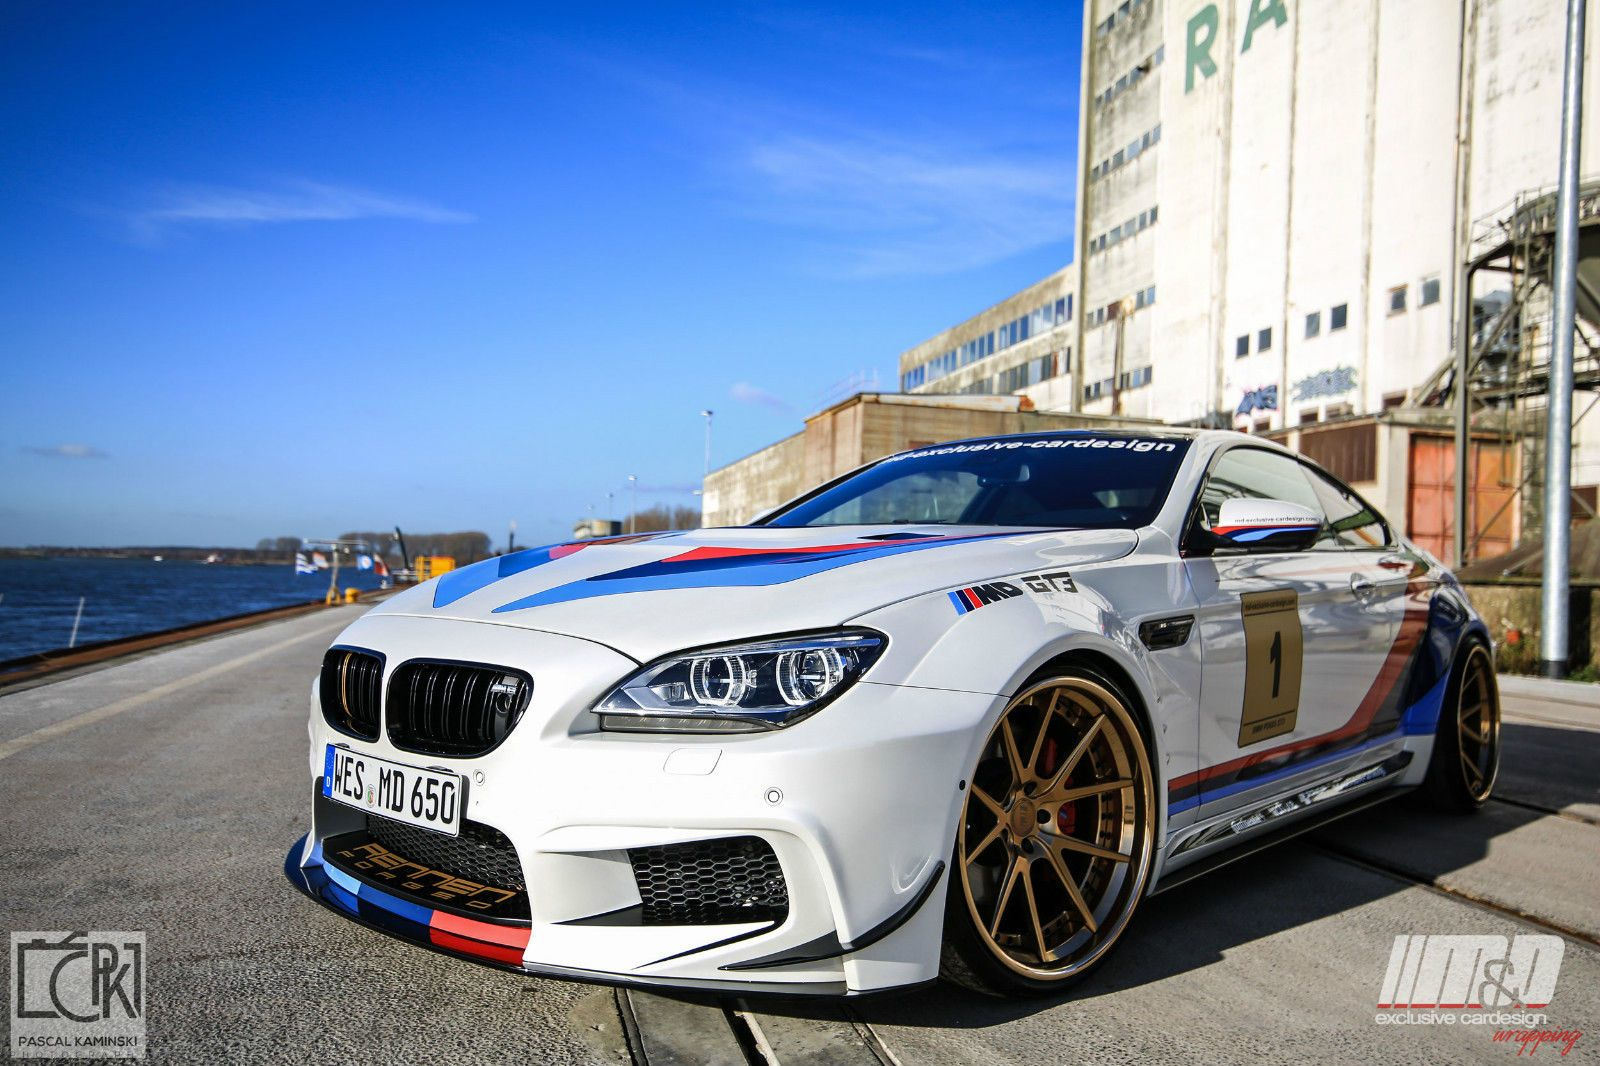 2011 Bmw 650i Coupe 6er F13 M6 Gt3 Widebody 21 Rennen Forged